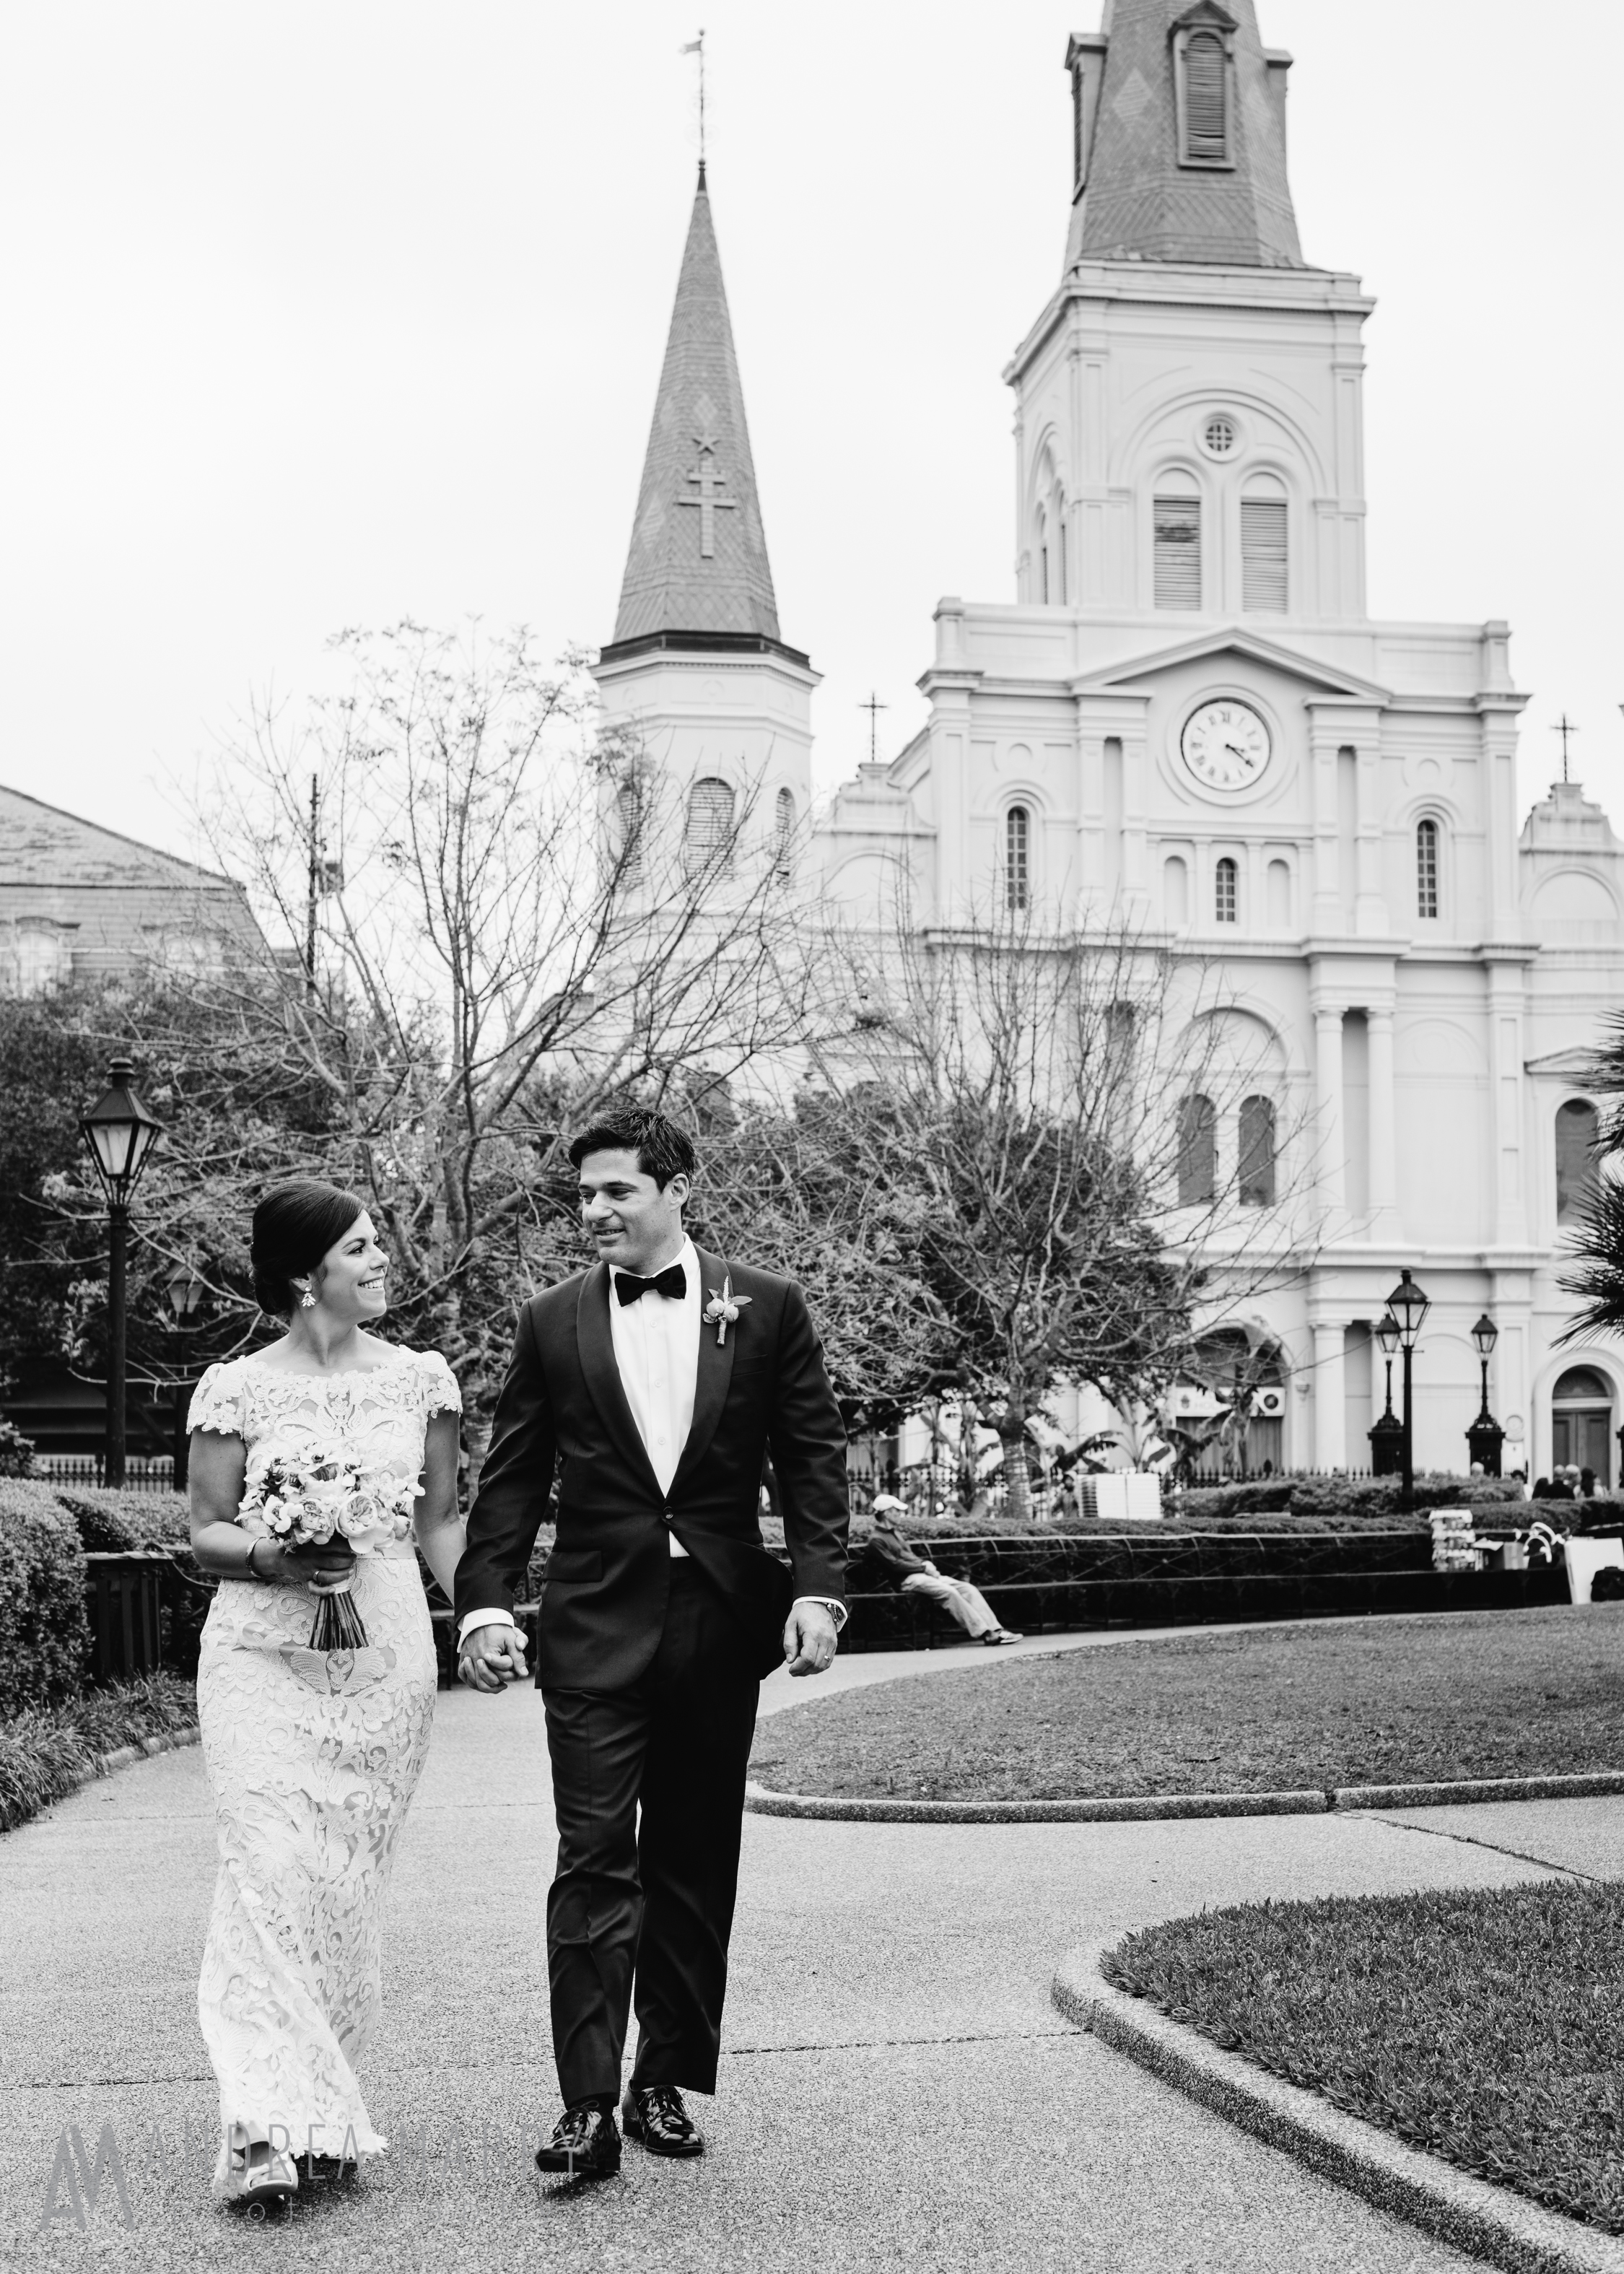 New Orleans French Quarter wedding, New Orleans Jackson Square wedding